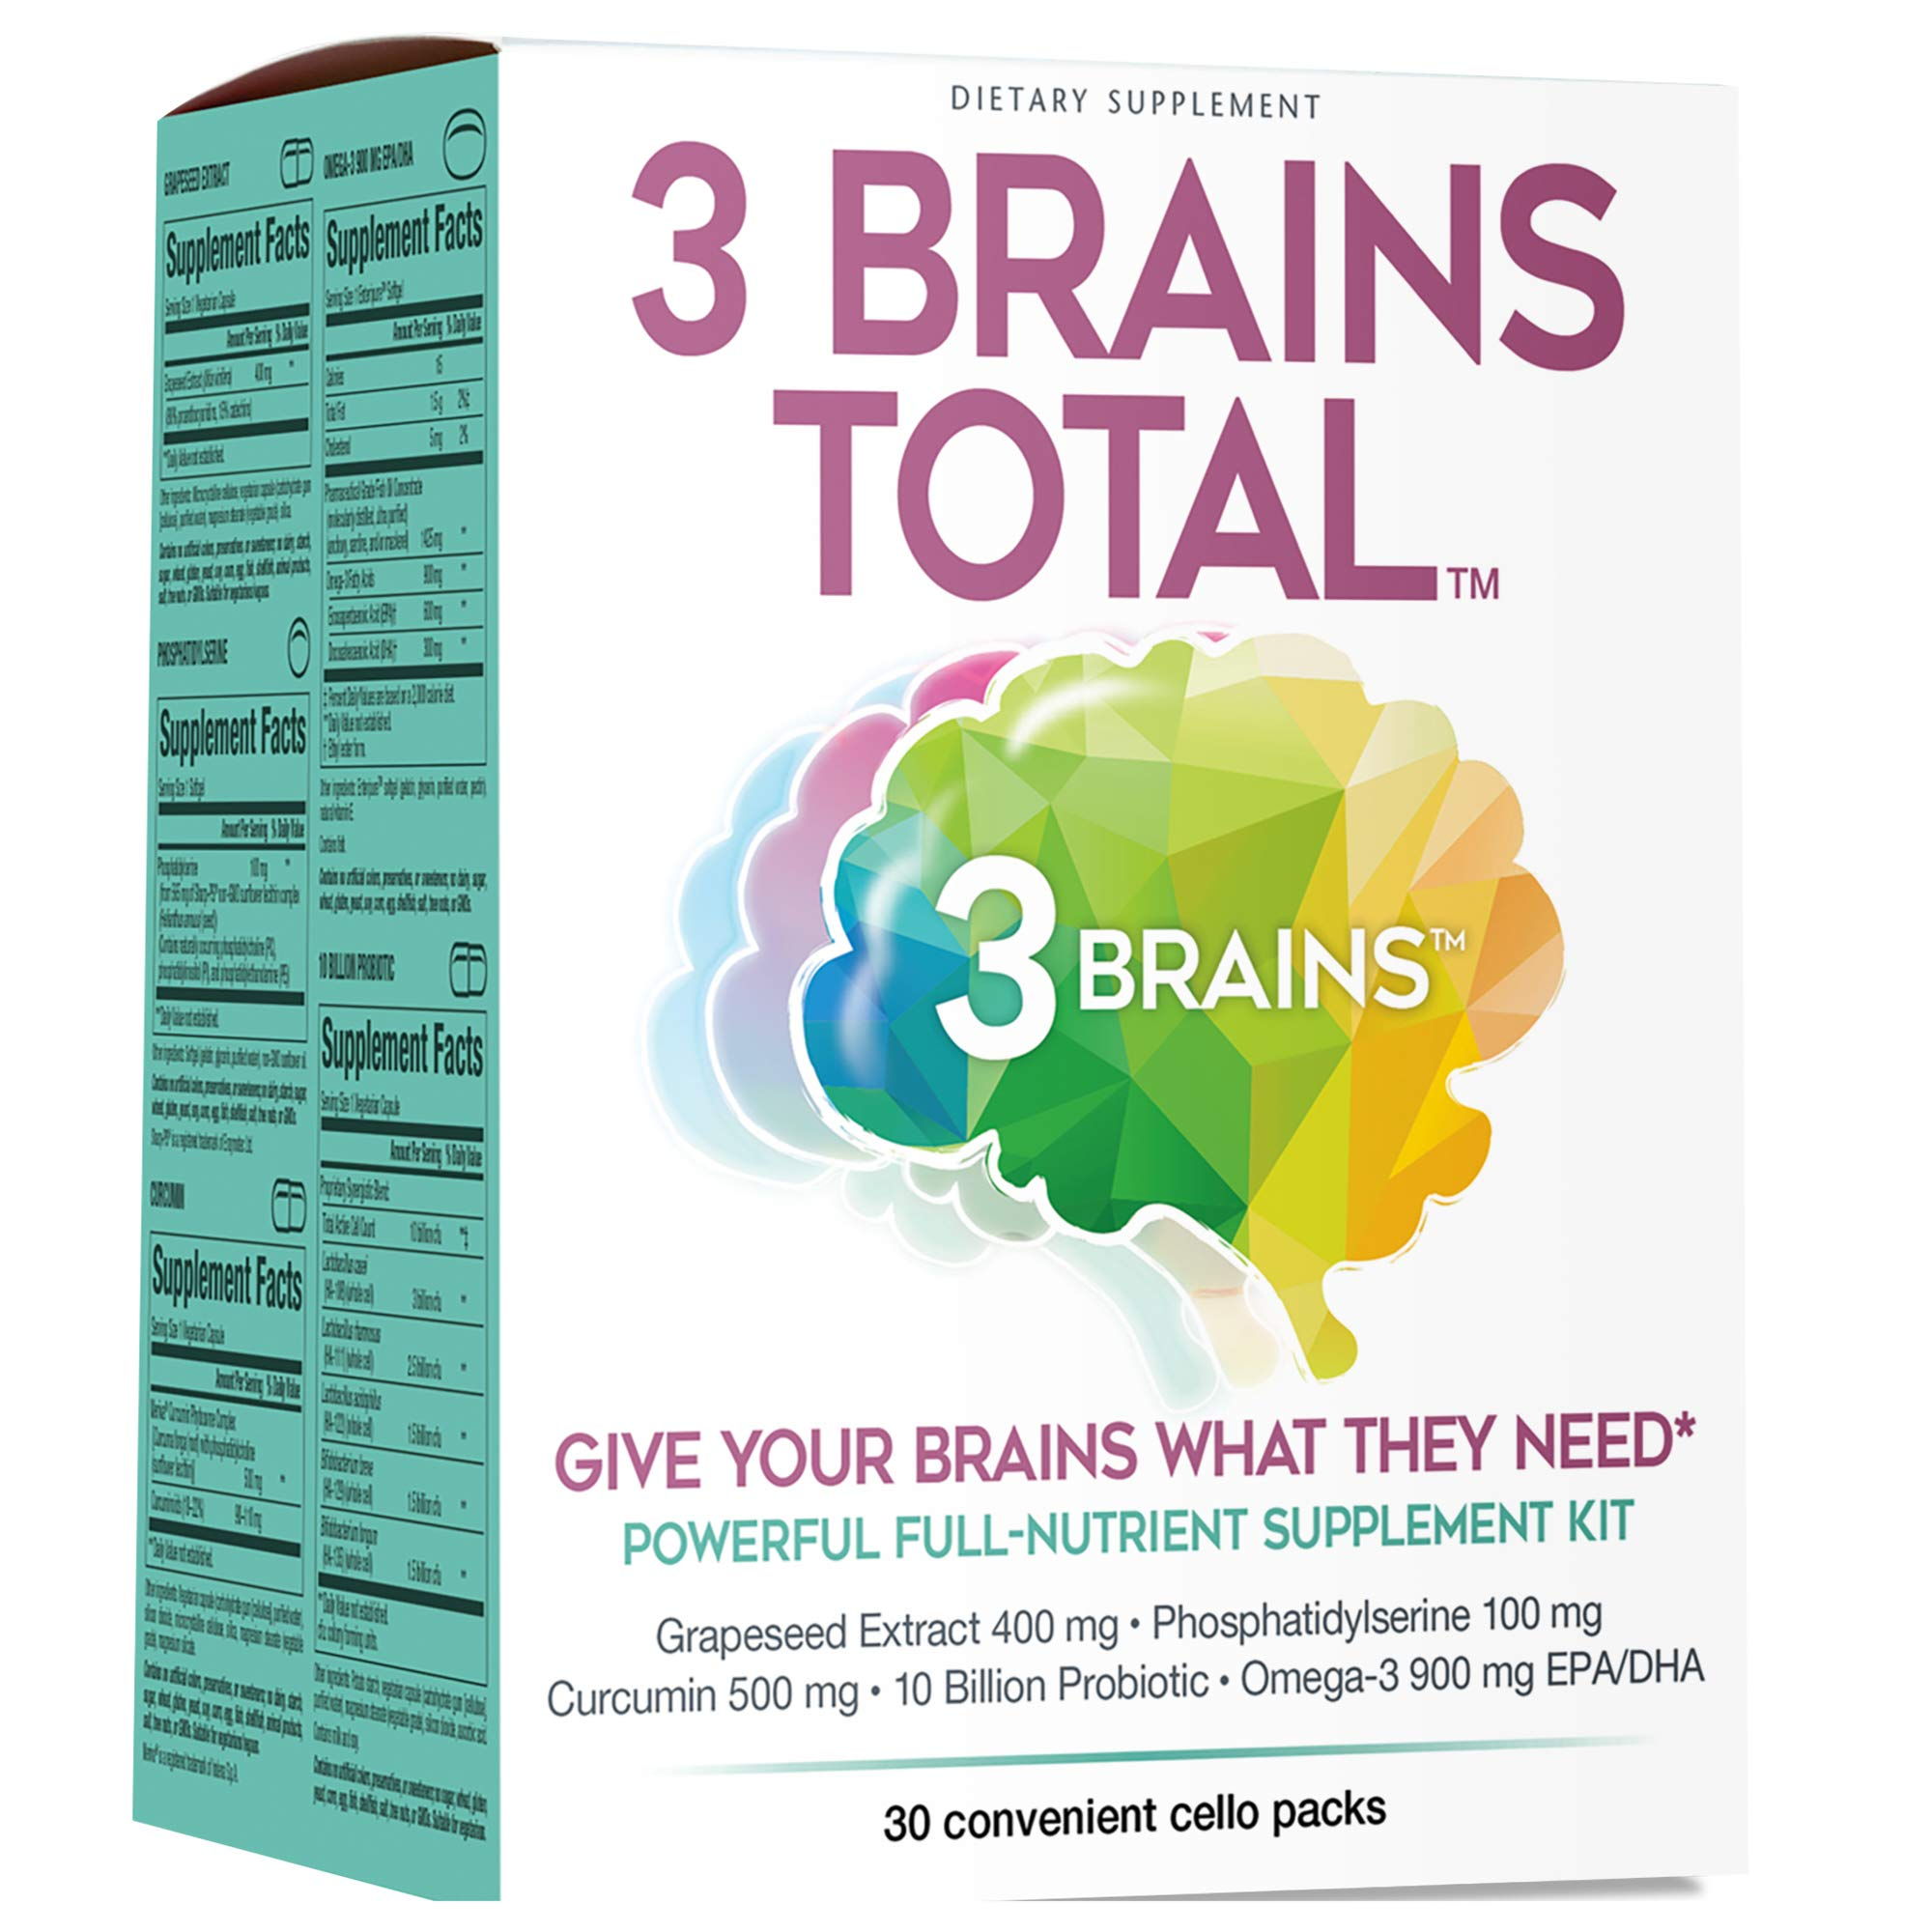 3 Brains by Natural Factors, 3 Brains Total Kit, Promotes Brain Health and Well-Being, Daily Dietary Supplement, 30 Single-Serve Packs (30 Servings)